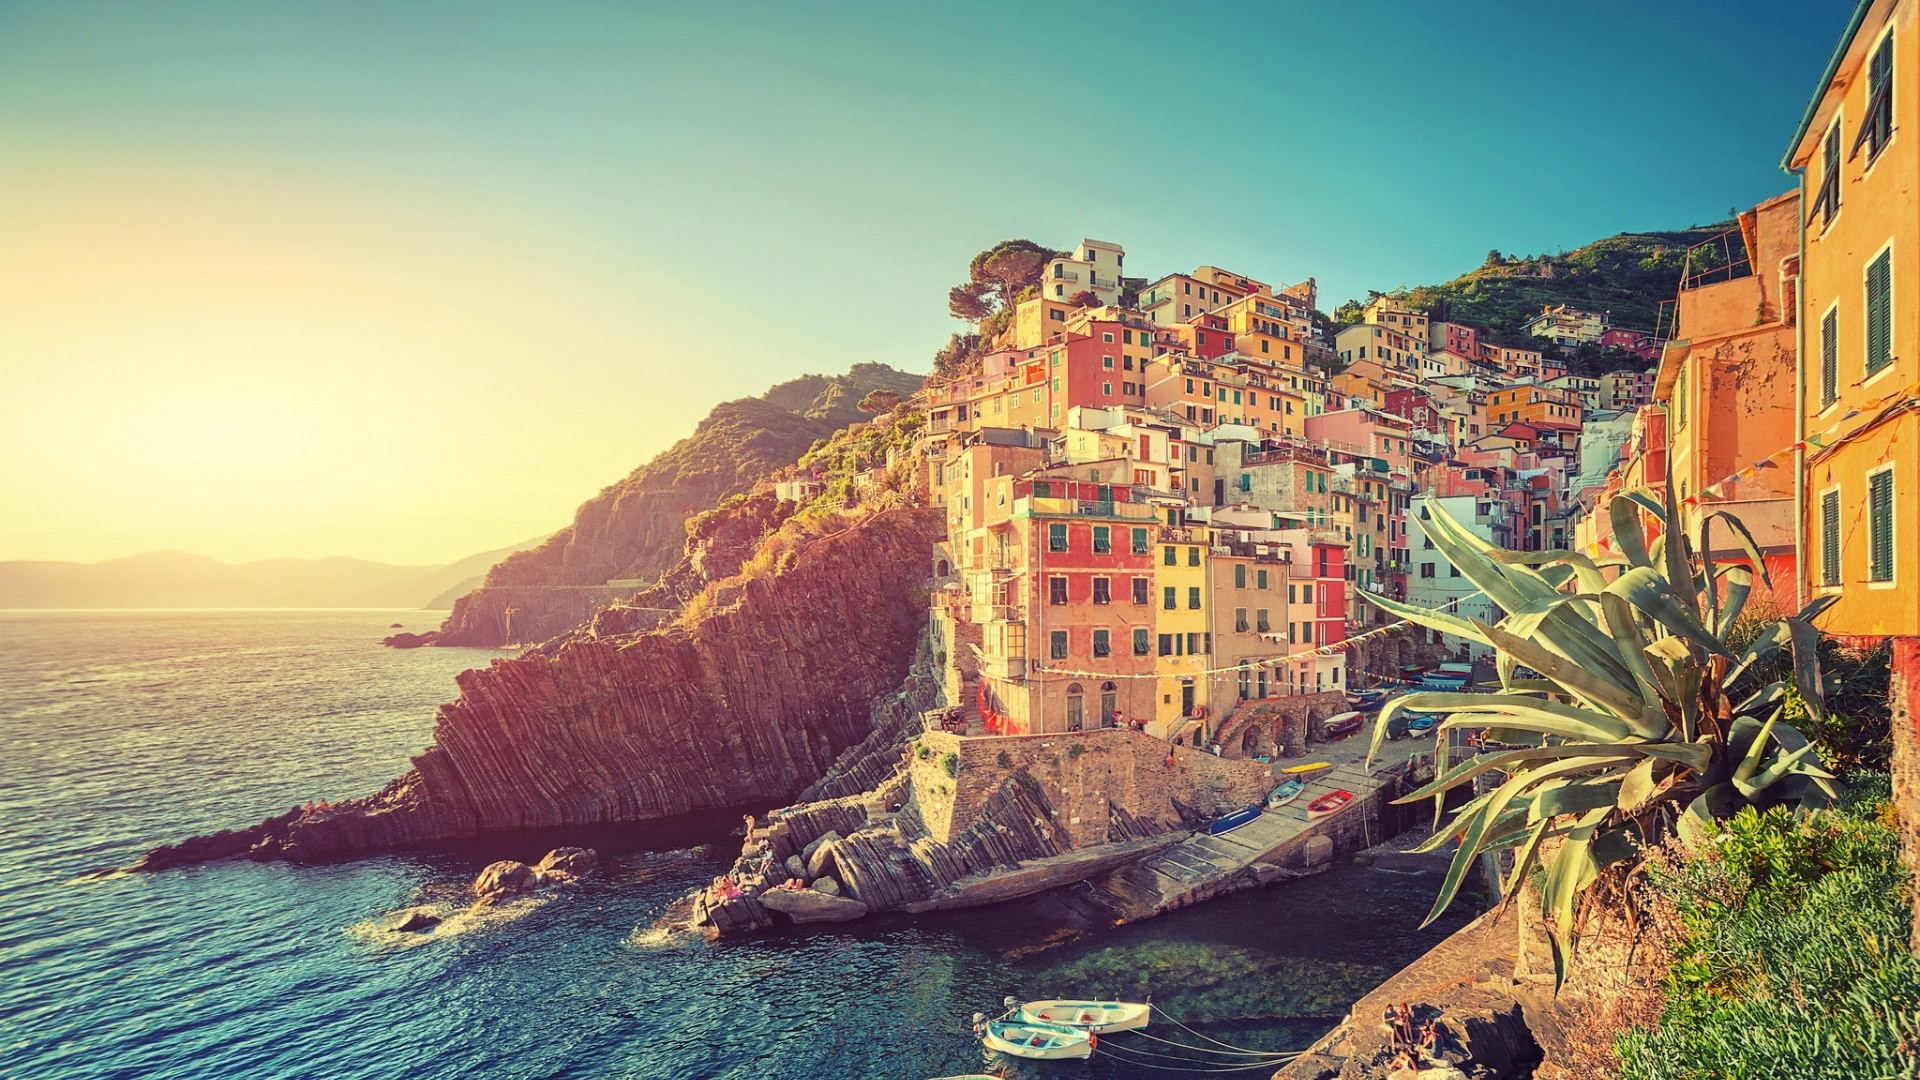 Manarola Town In Italy Wallpapers